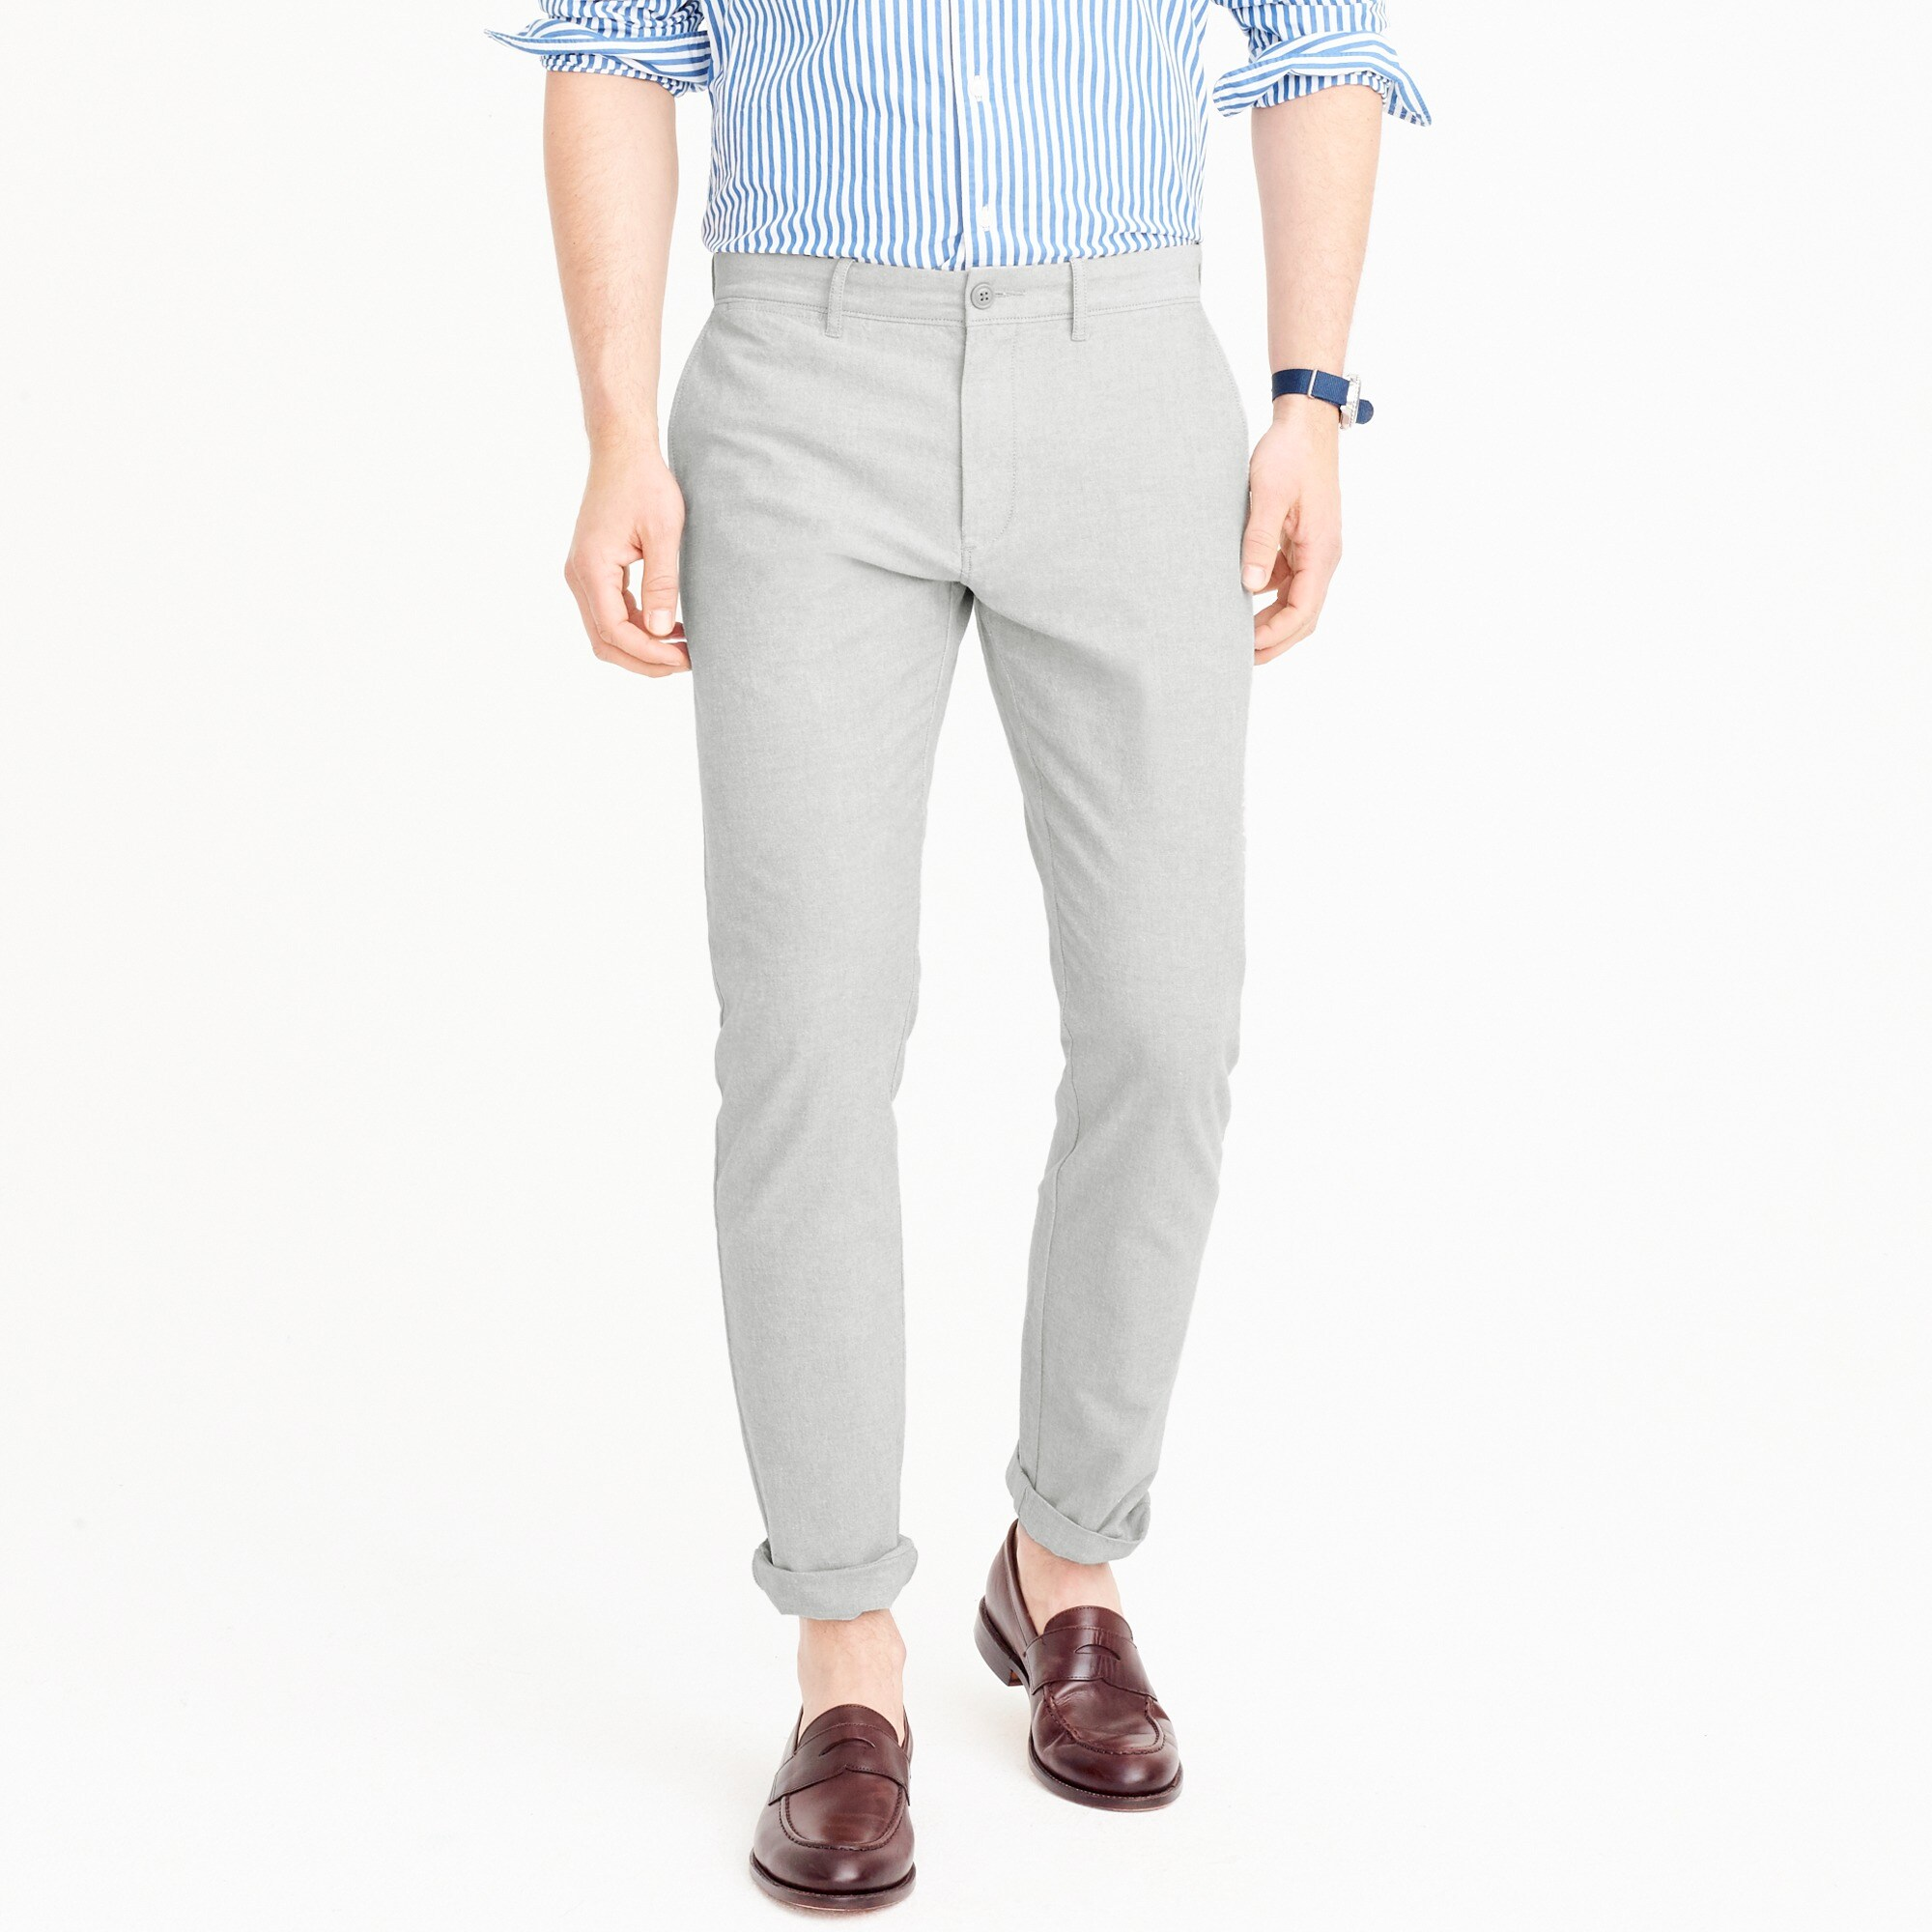 484 Slim-fit pant in stretch chambray men pants c